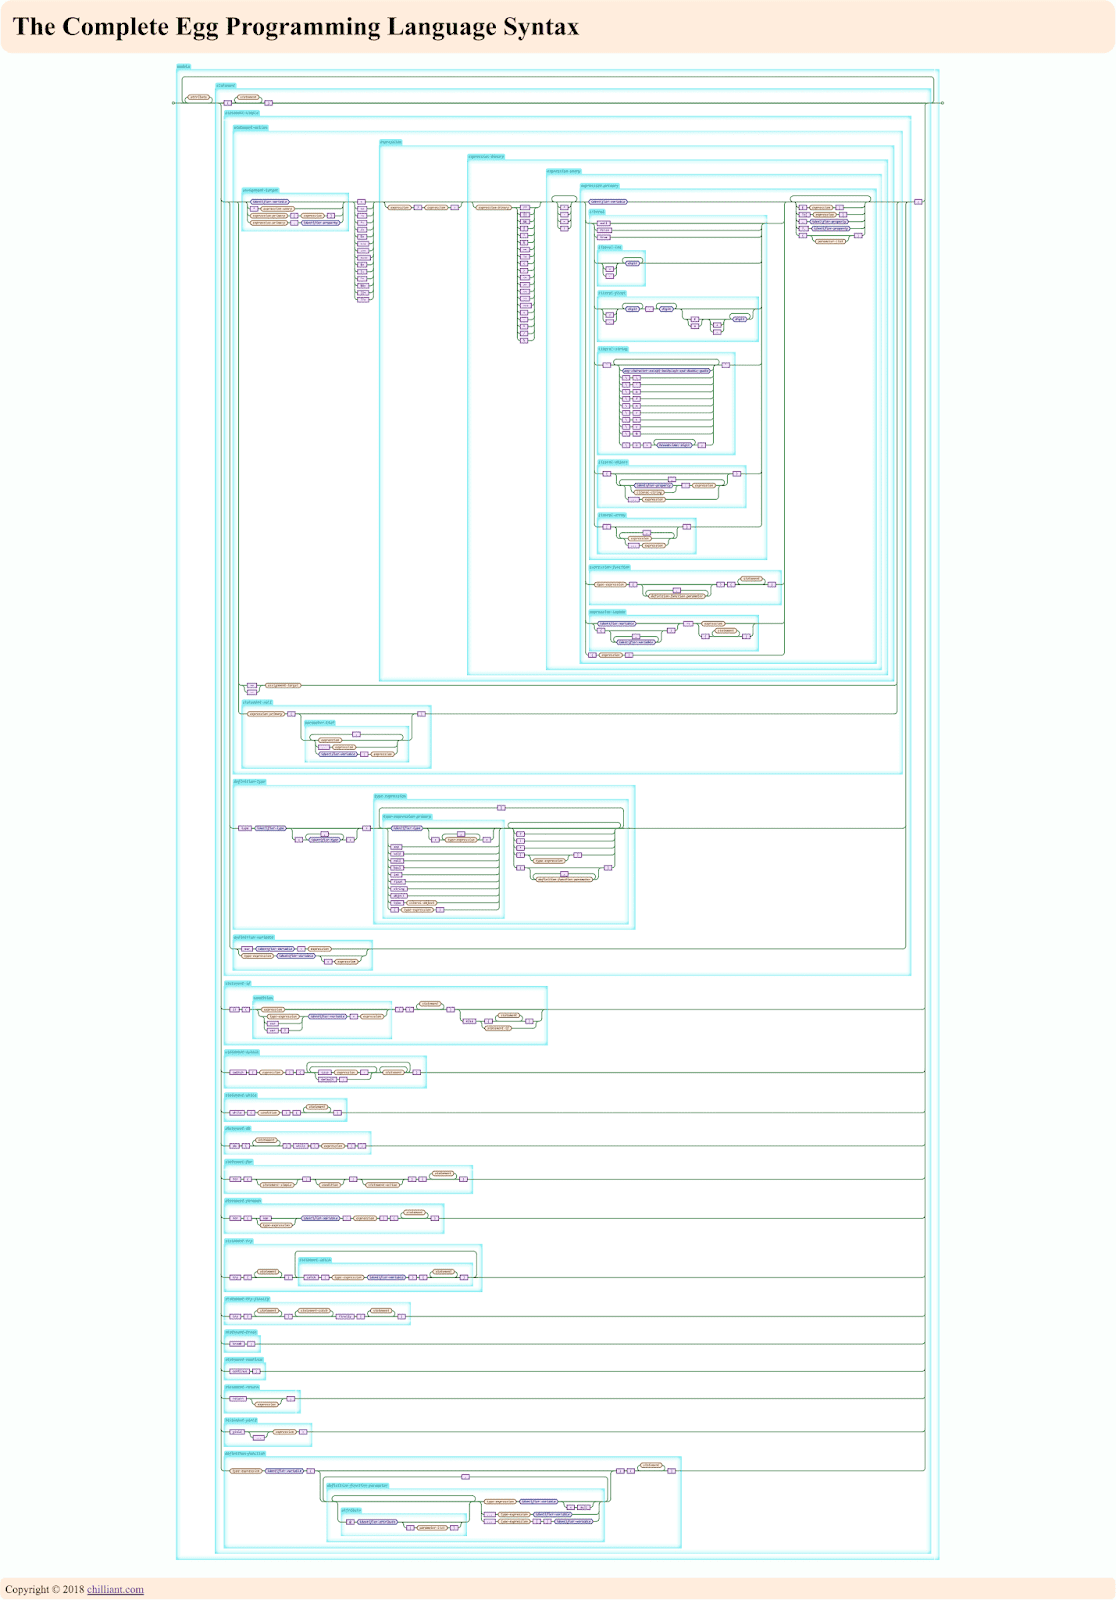 medium resolution of as mentioned last time i ve been working on a poster for the complete egg programming language syntax as a railroad diagram i finally managed to squeeze